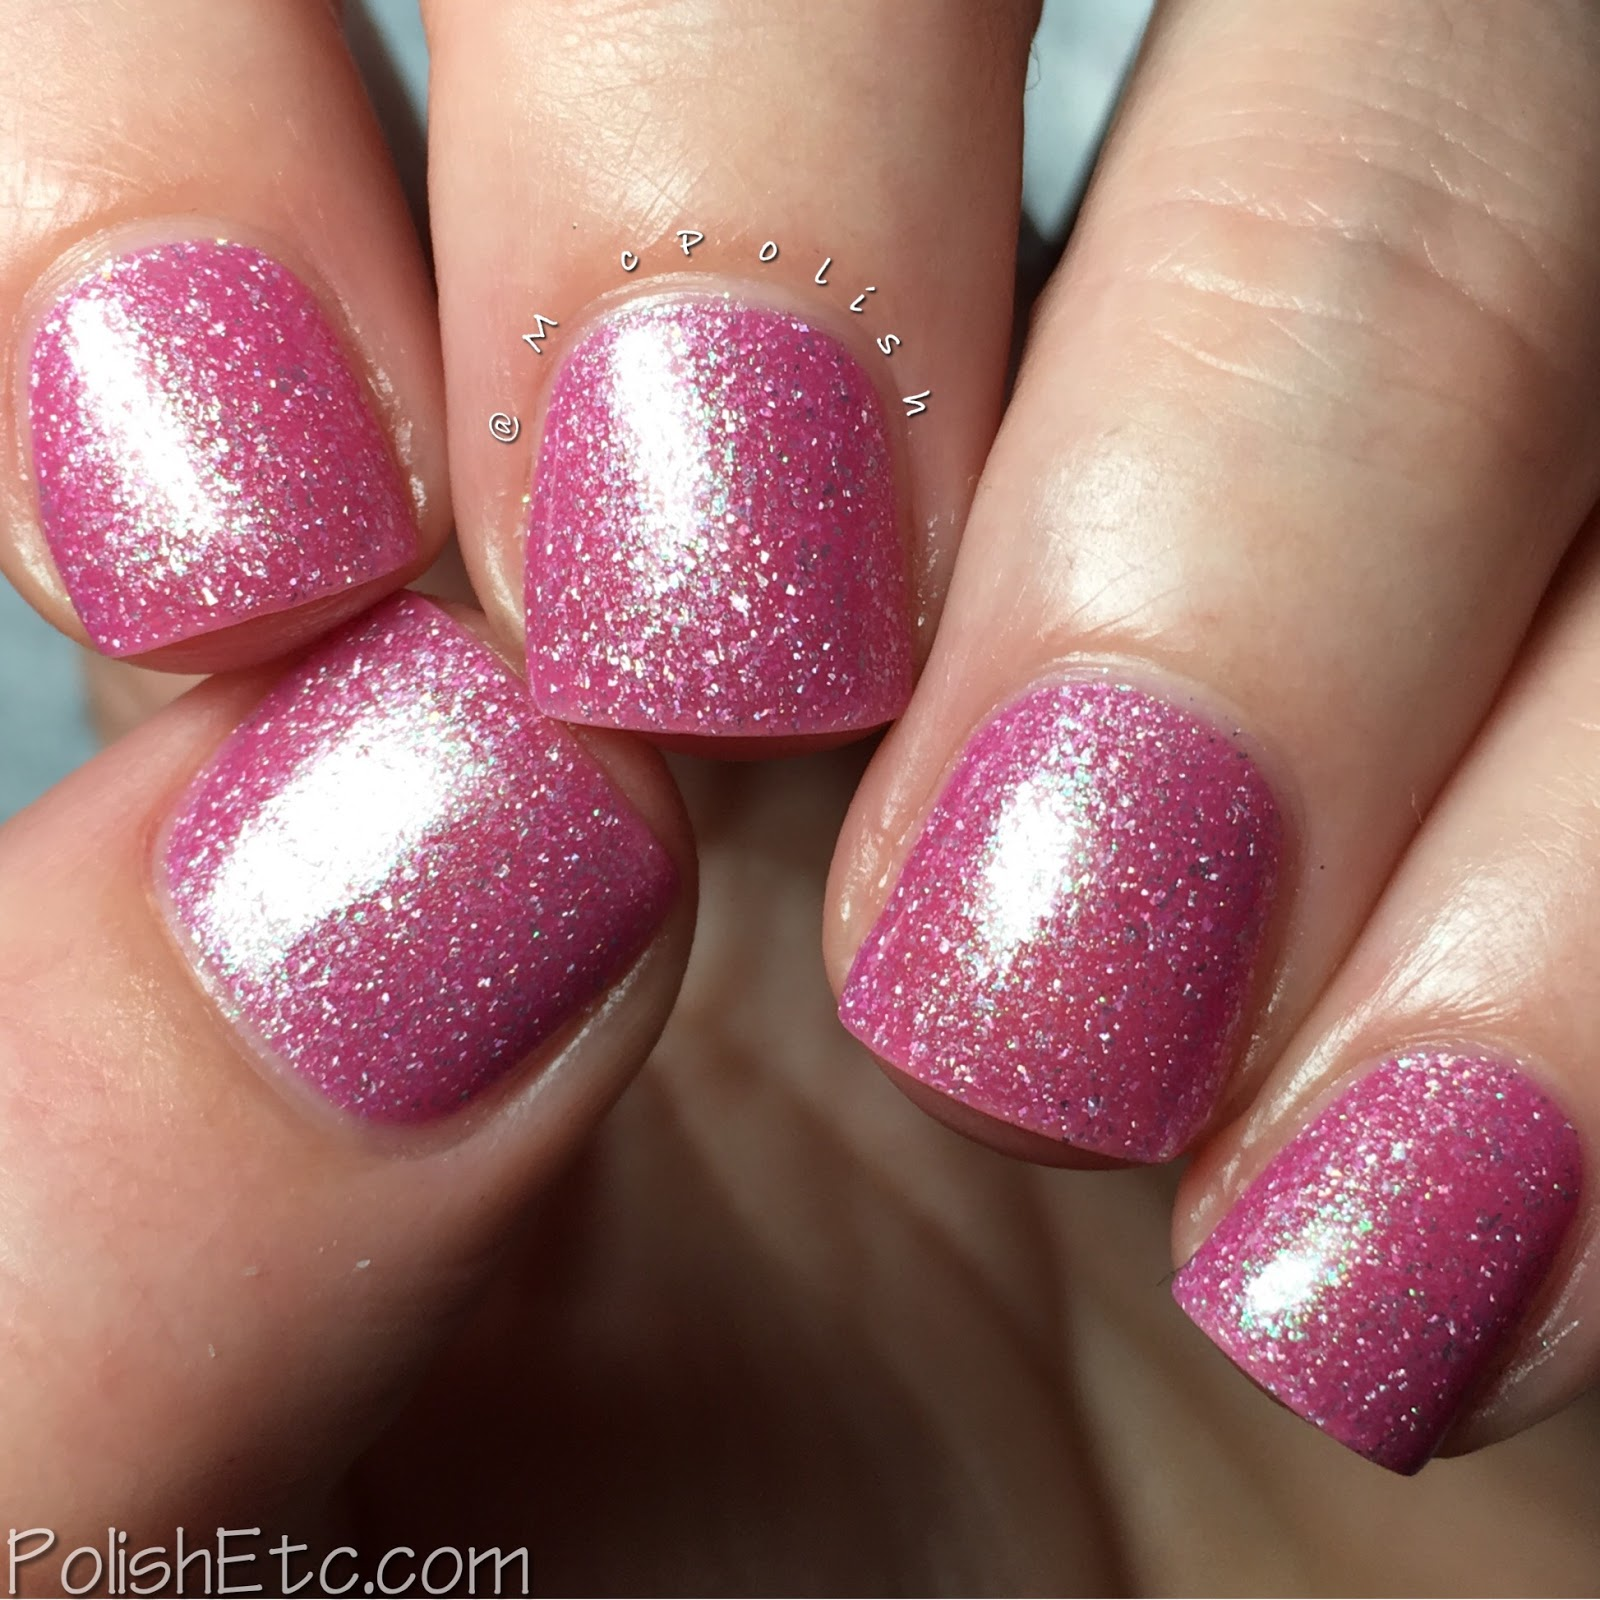 Takko Lacquer - Color4Nails Exclusives - McPolish - Watermelon Tourmaline